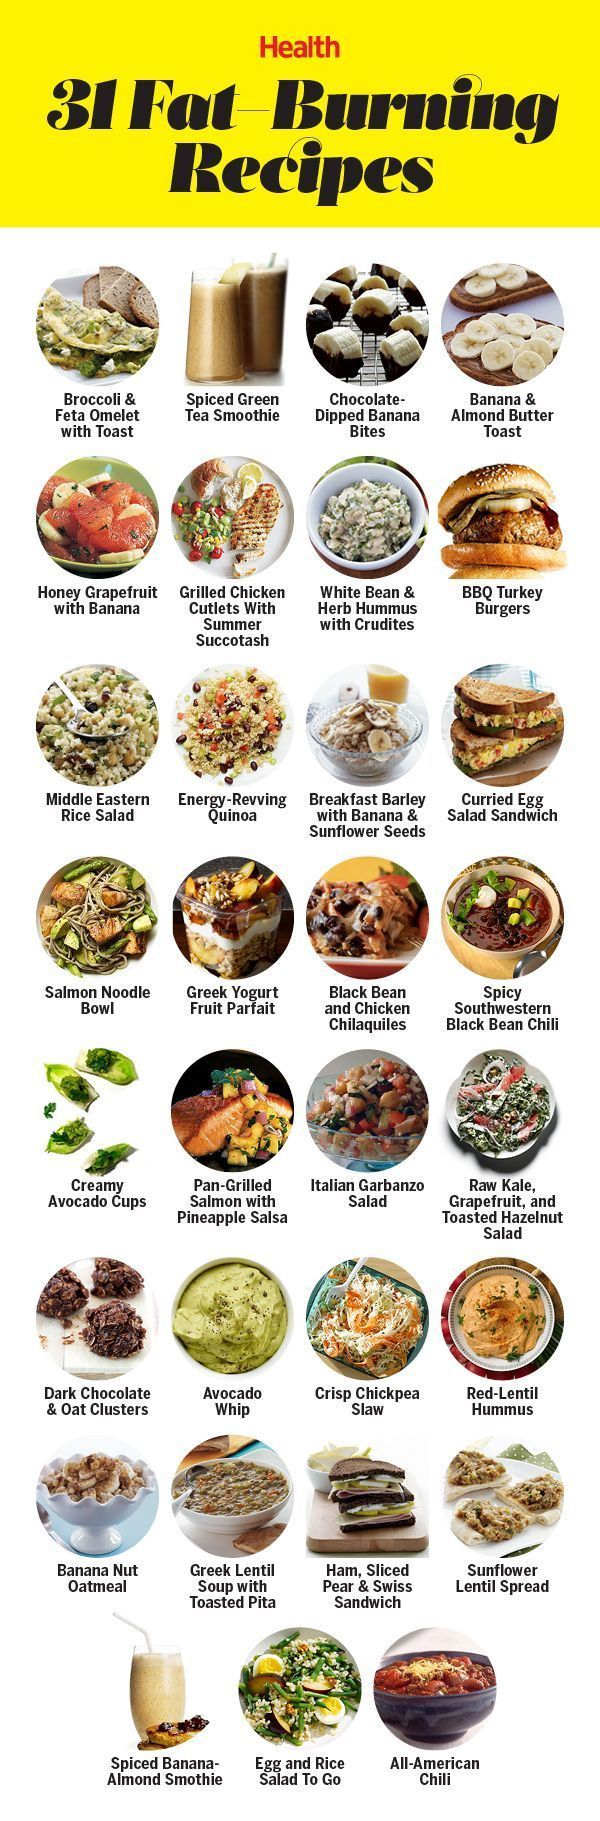 See more here ► https://www.youtube.com/watch?v=xctKmmiYuKo Tags: one week weight loss diet plan, the quickest way to lose weight in a week,  - 31 delicious and healthy fat-burning recipes: From turkey burgers to banana smoothies, these simple calorie-burning recipes will help you lose weight fast. | Health.com